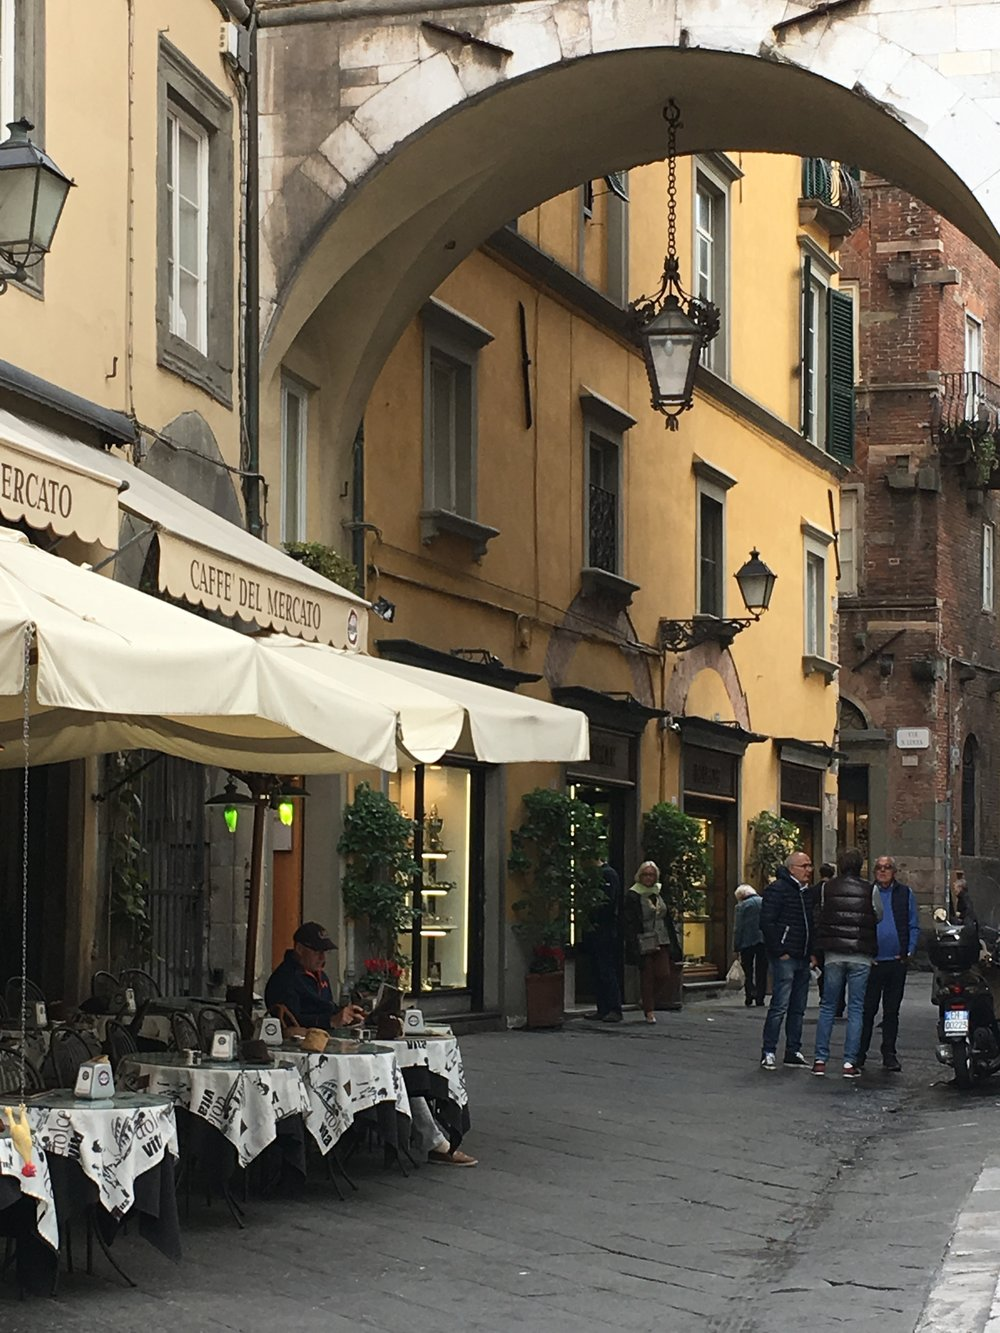 A cafe just off Piazza San Michele, Lucca